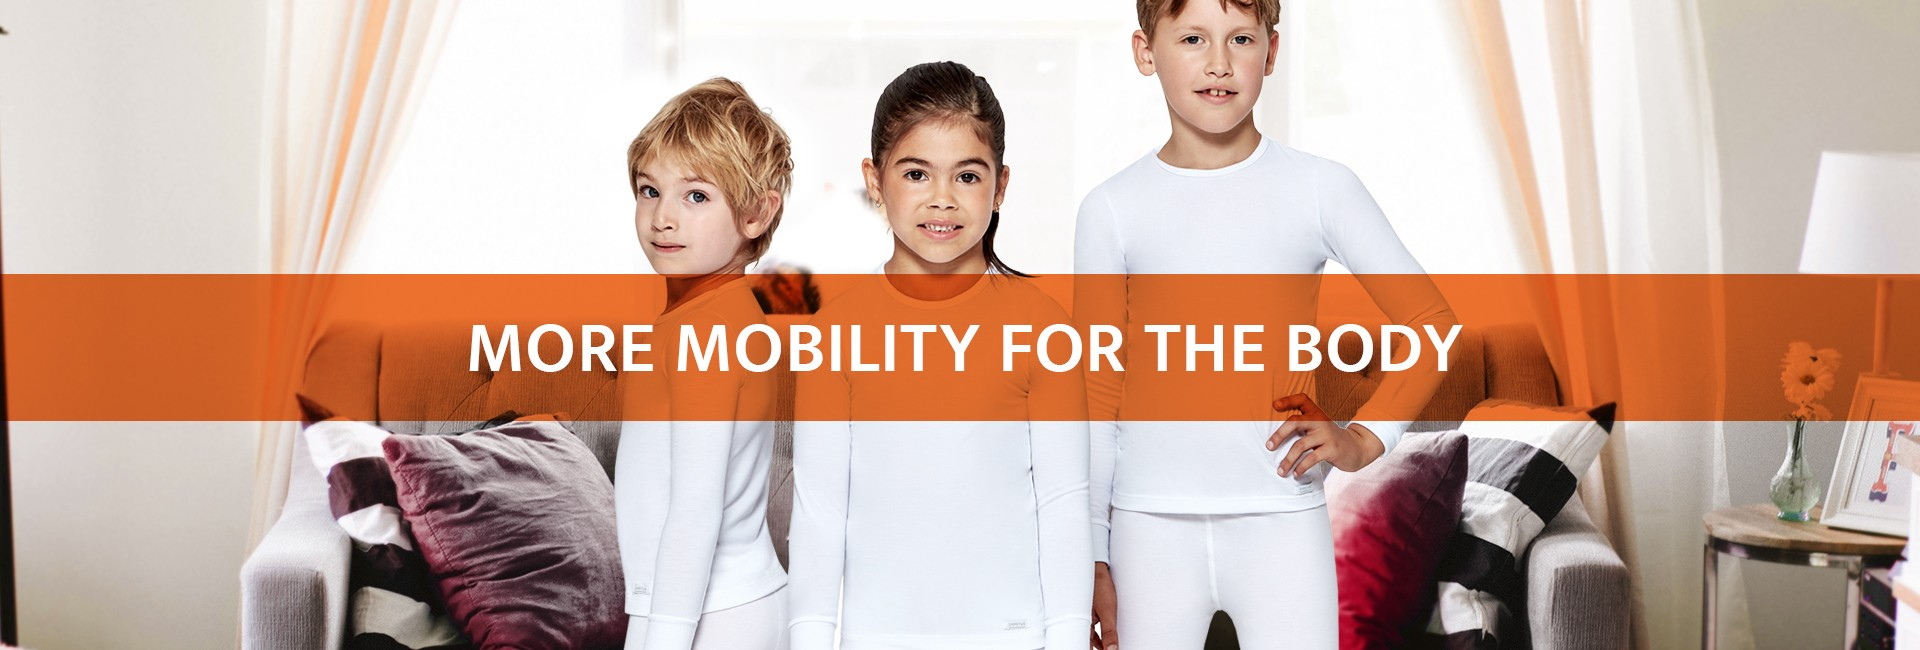 More elasticity | More adaptability | More mobility | More comfort | Thermal underwear_3